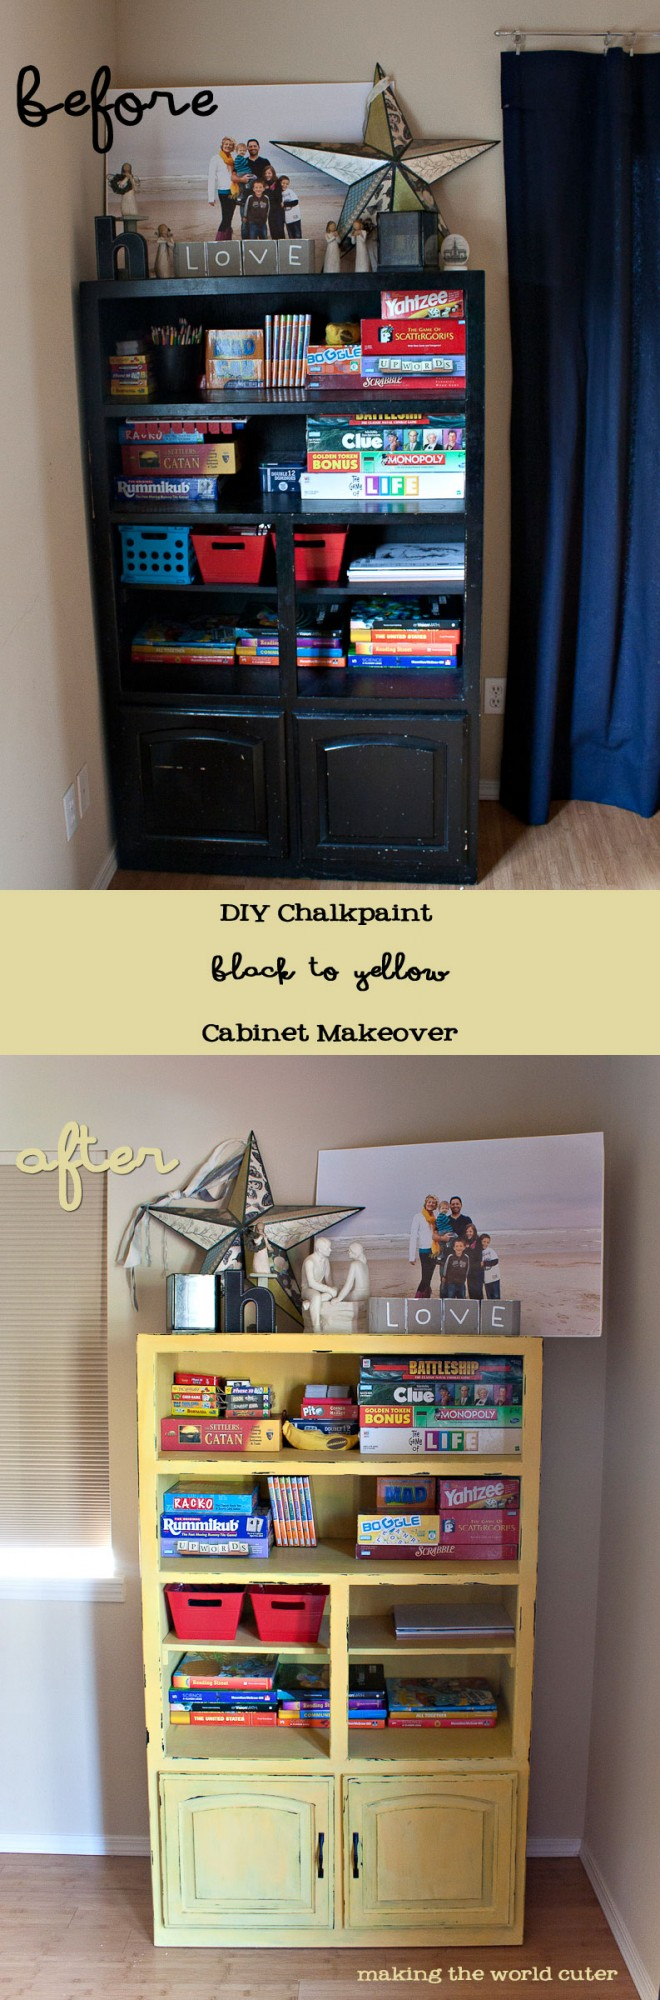 DIY Chalk Paint Cabinet Makeover! Love this color!